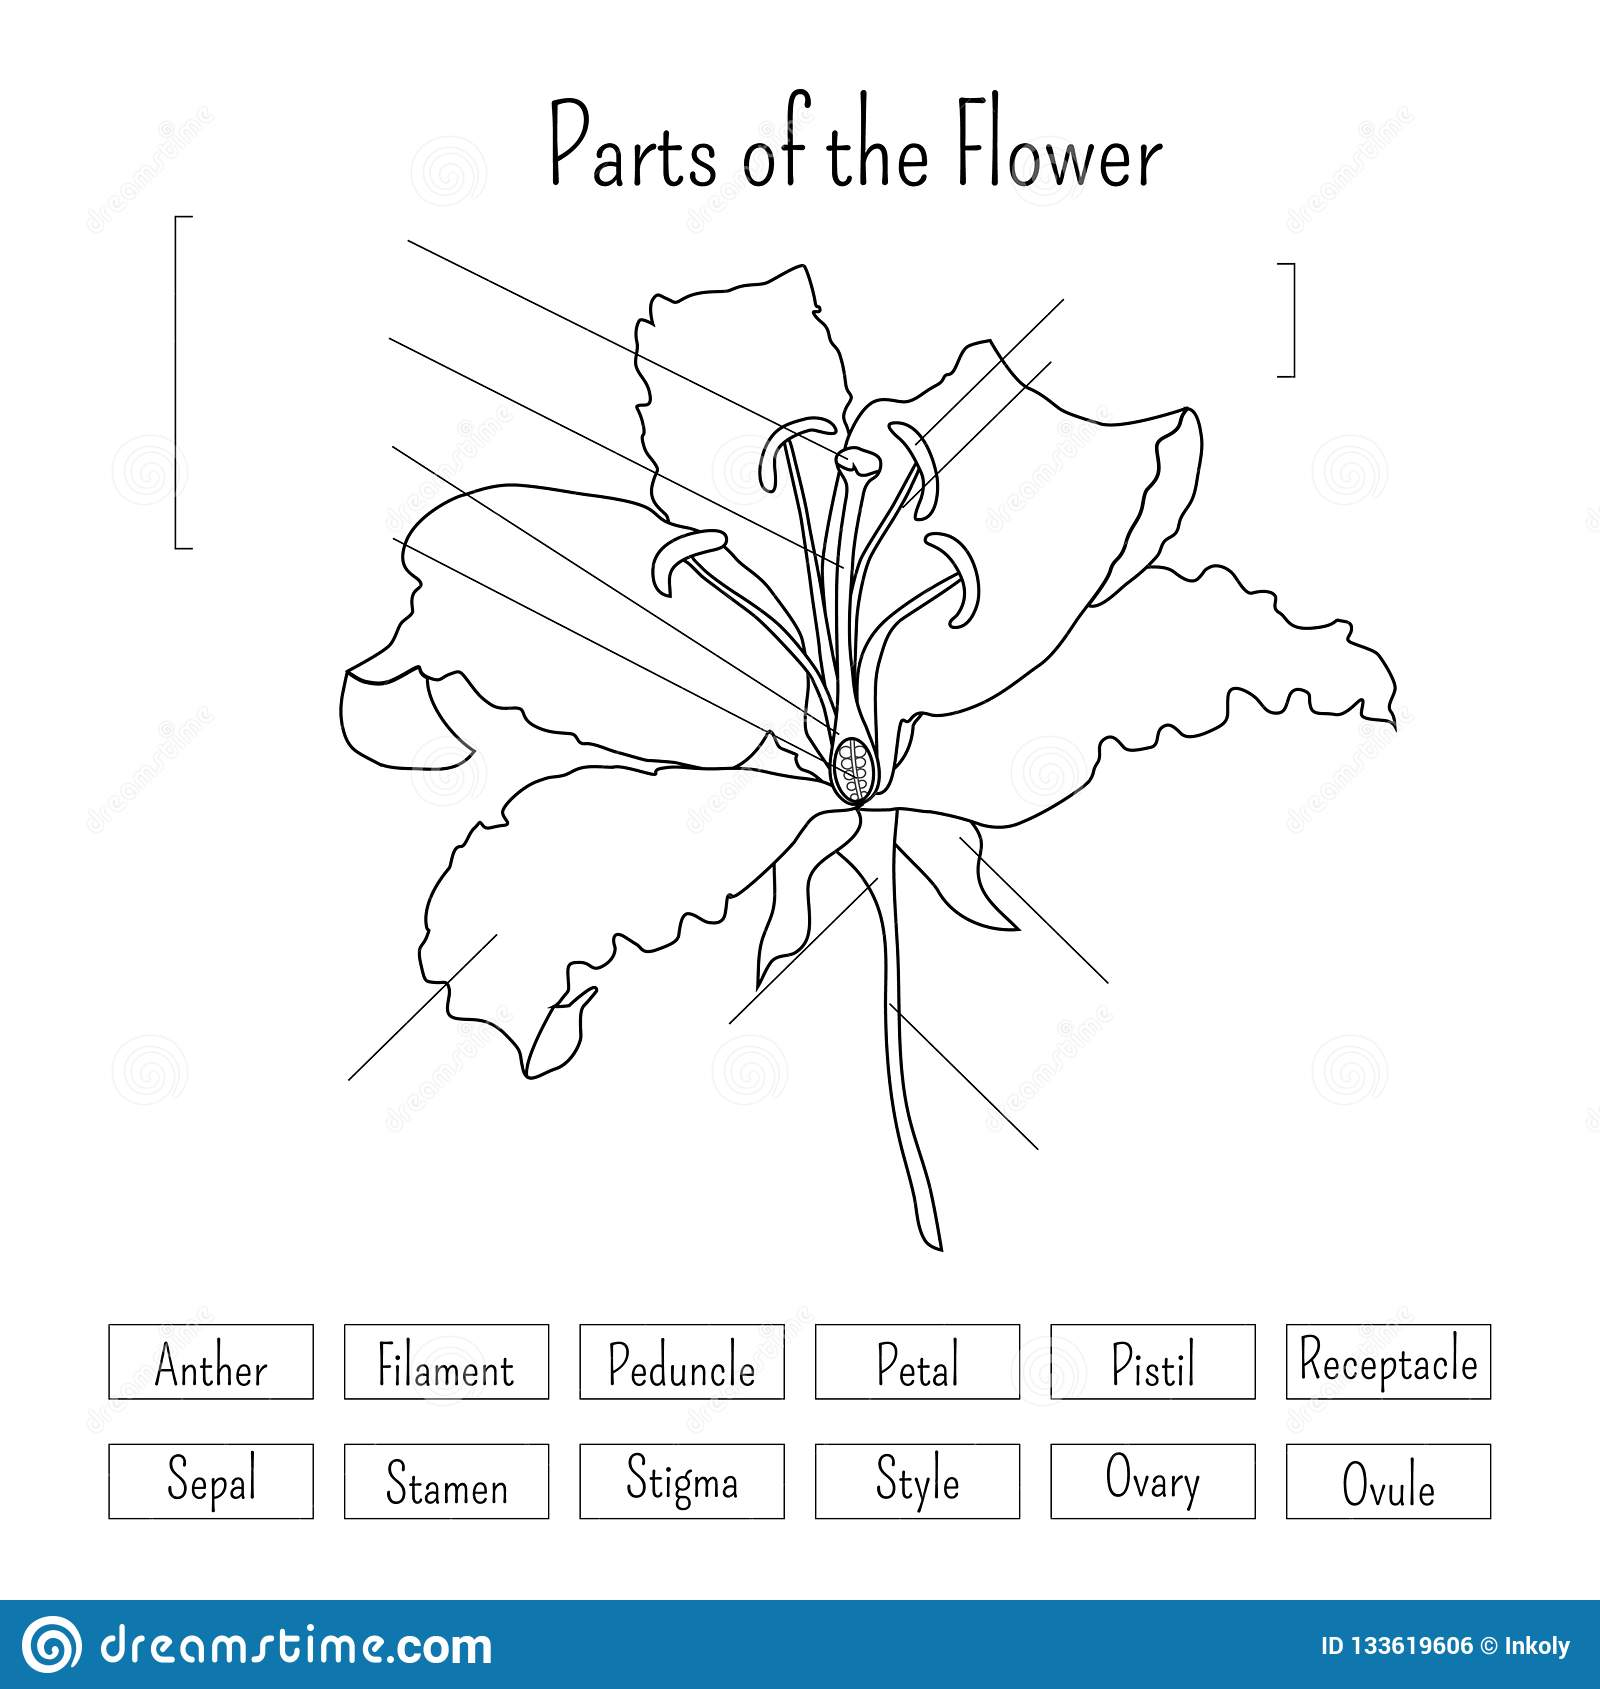 Parts Of The Flower Worksheet In Black And White Lily